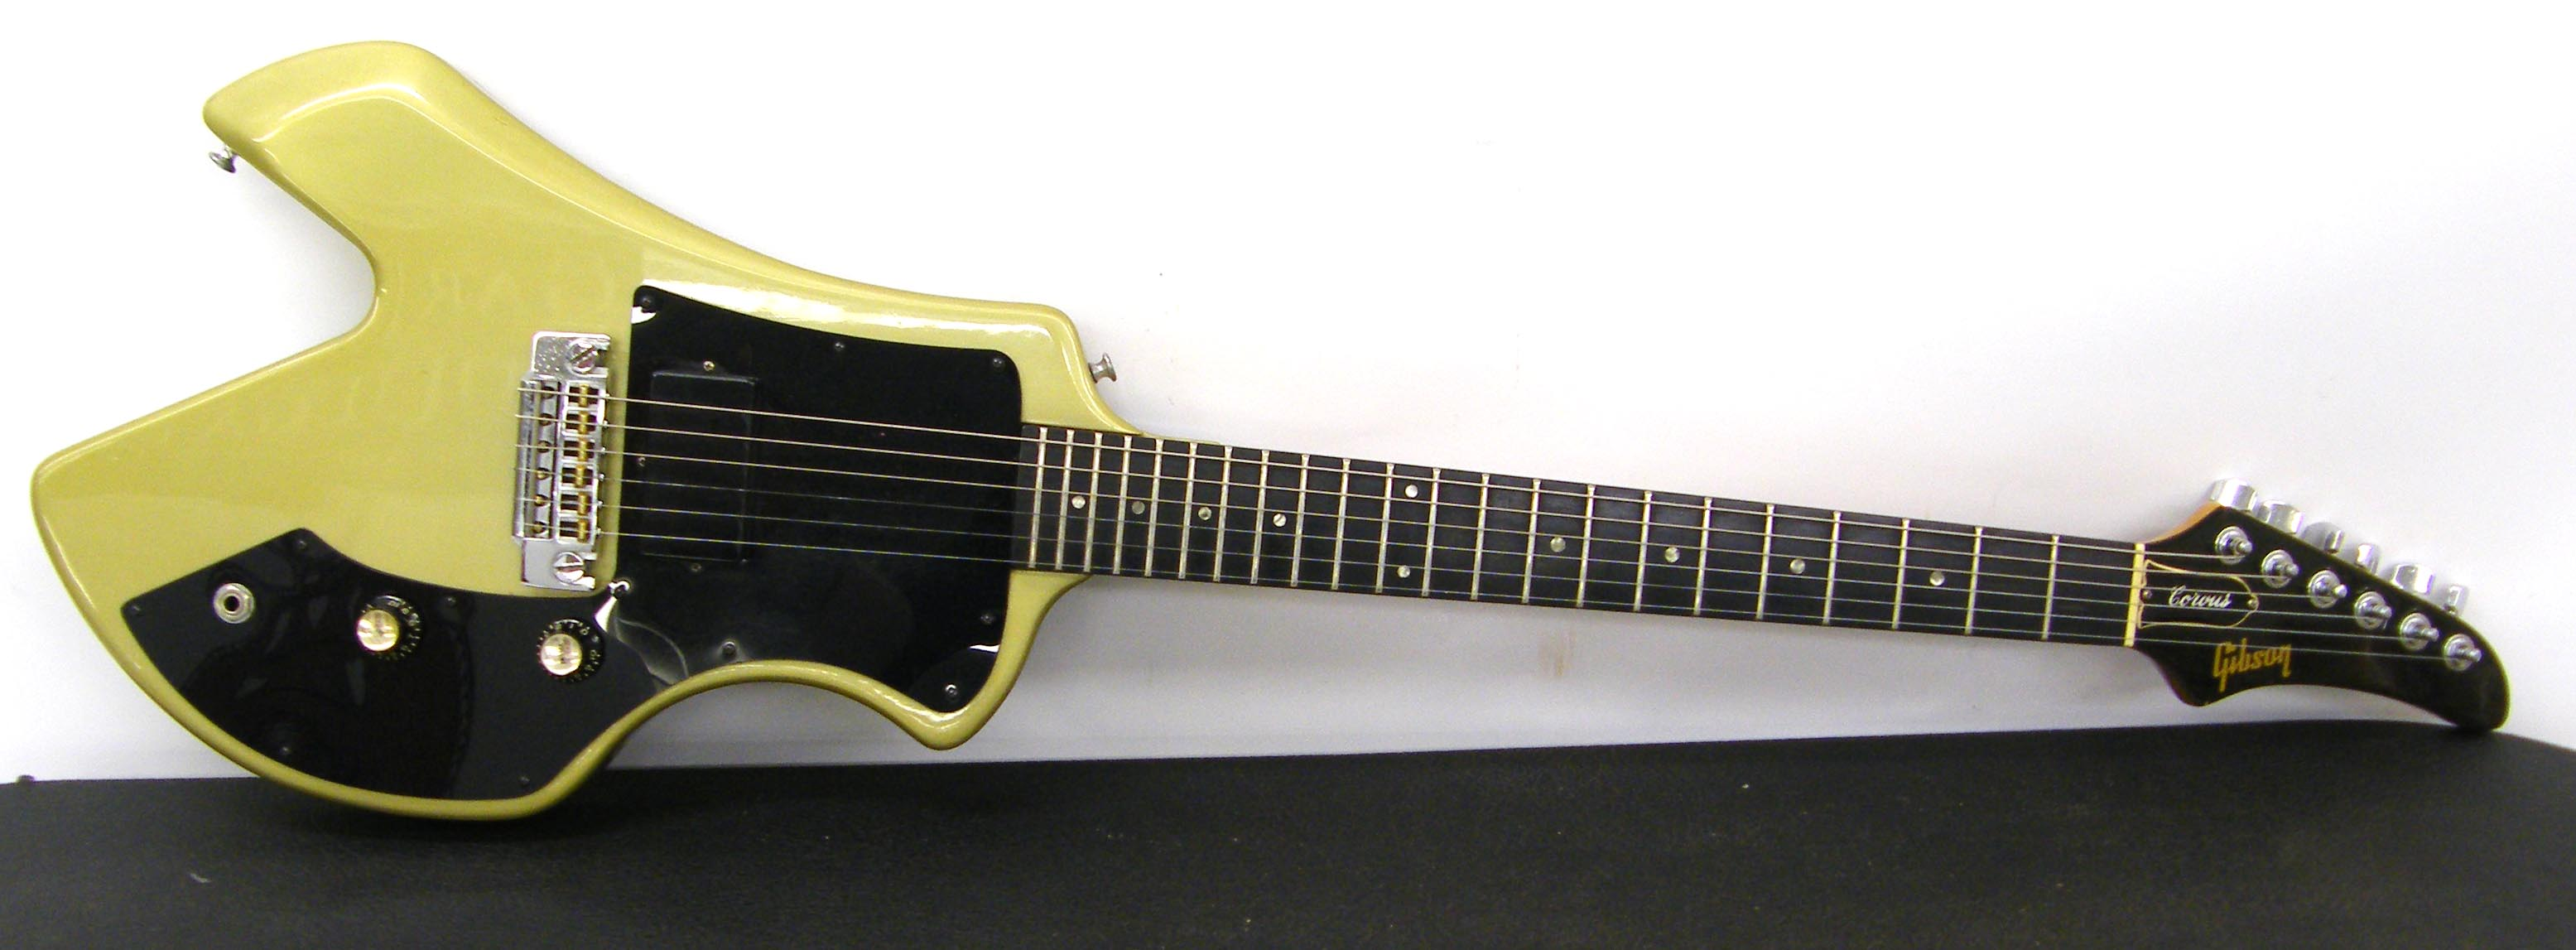 The Top 5 Strangest Gibson Guitars Ever Produced!